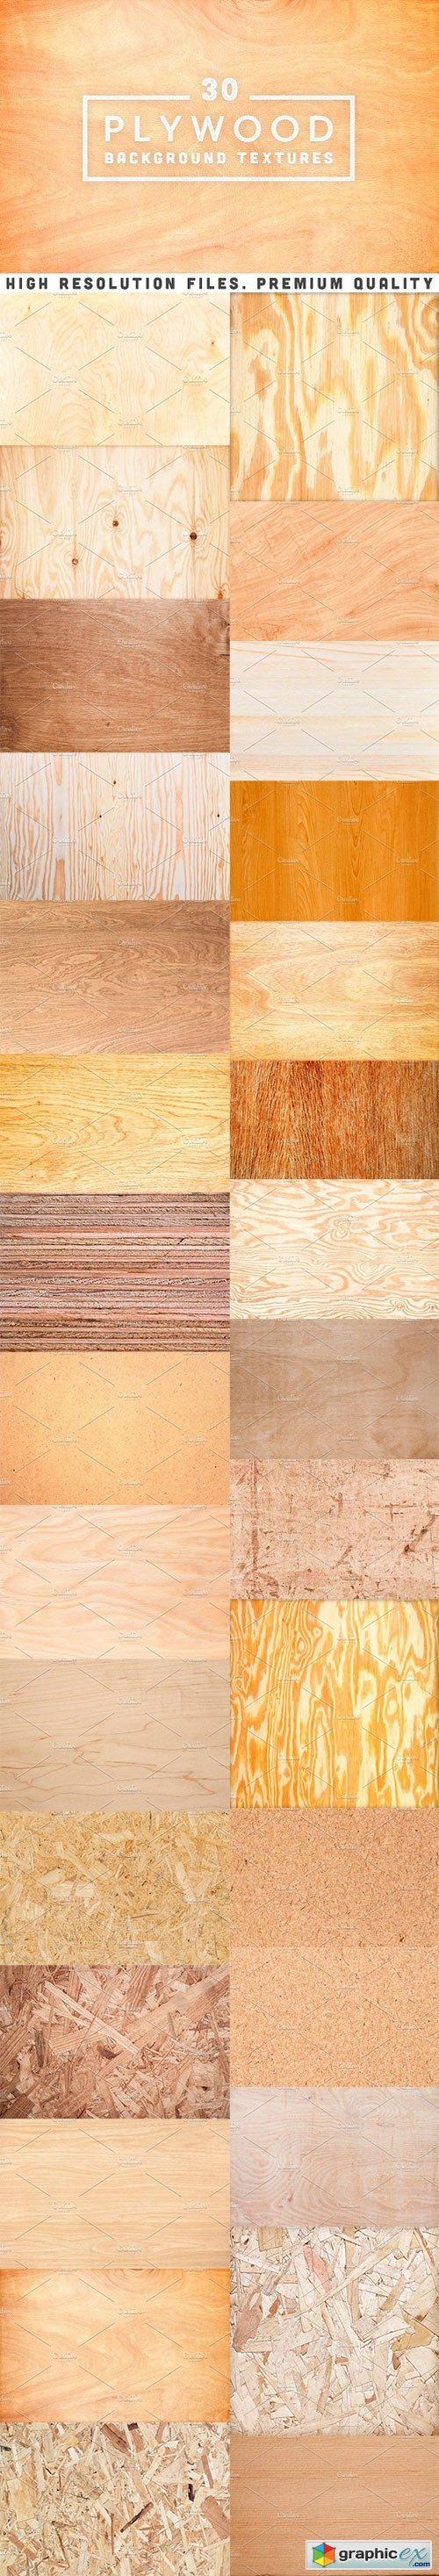 30 Plywood Background Textures